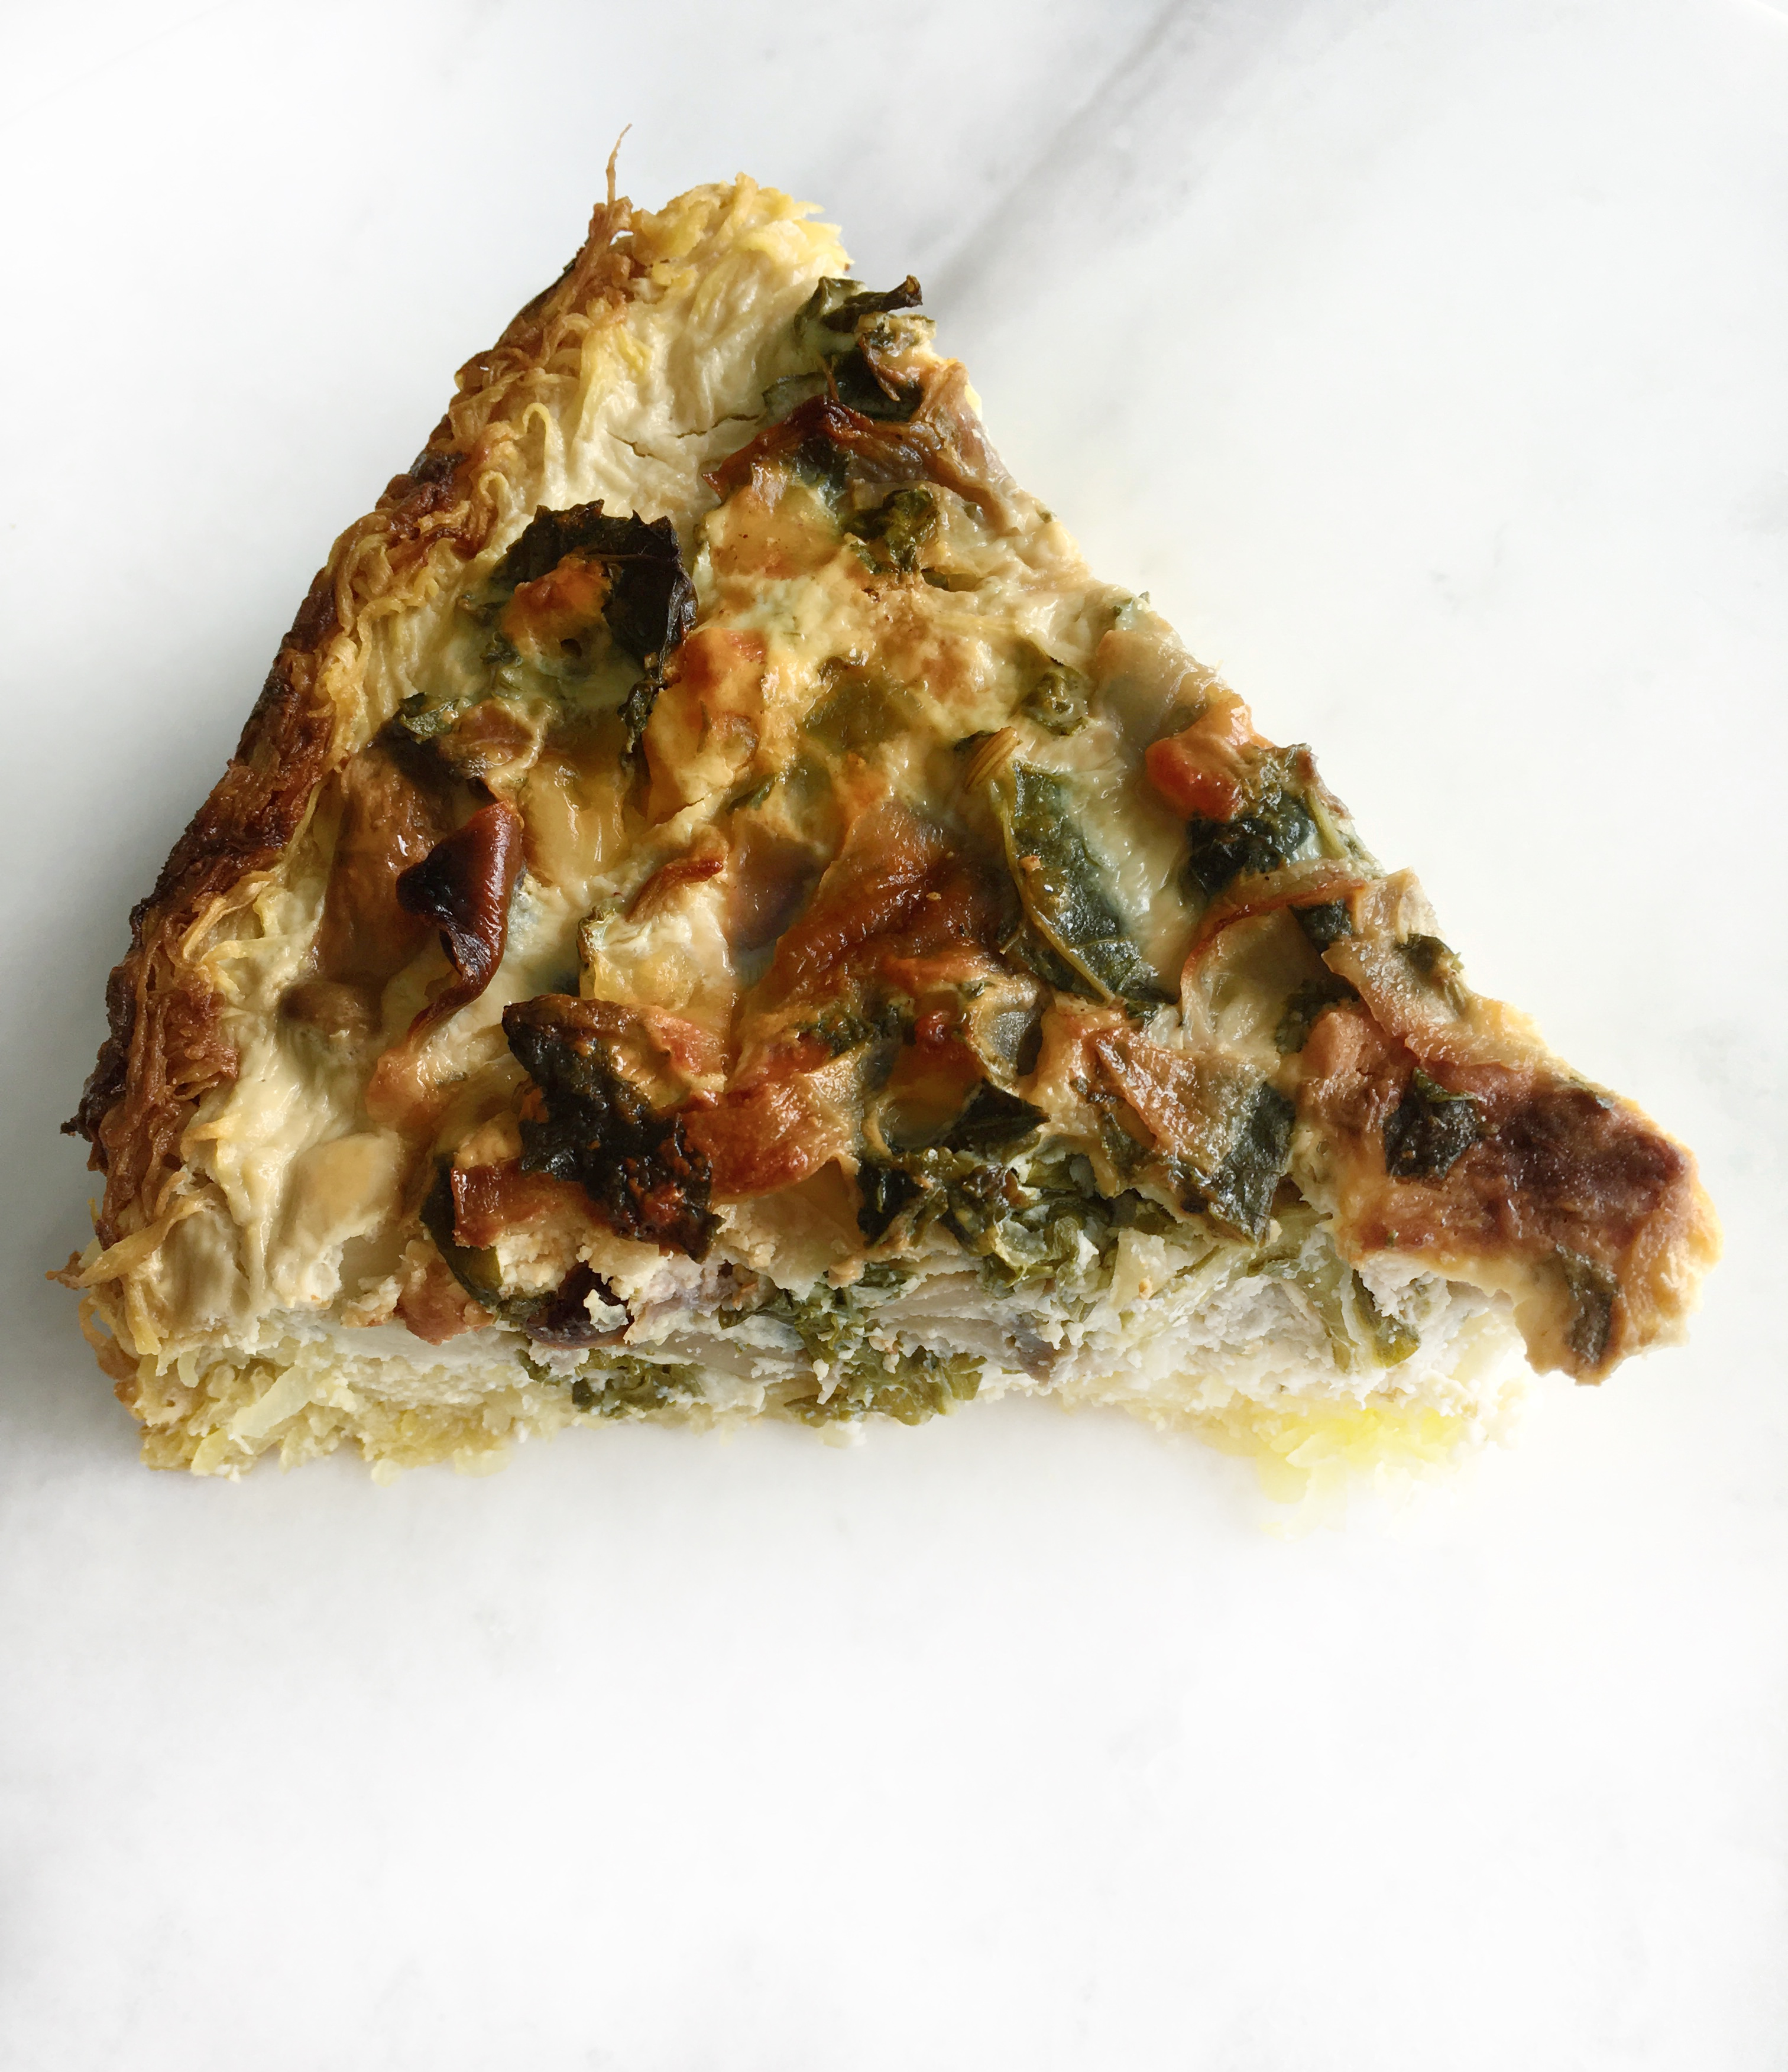 Slice of Gluten-Free Quiche